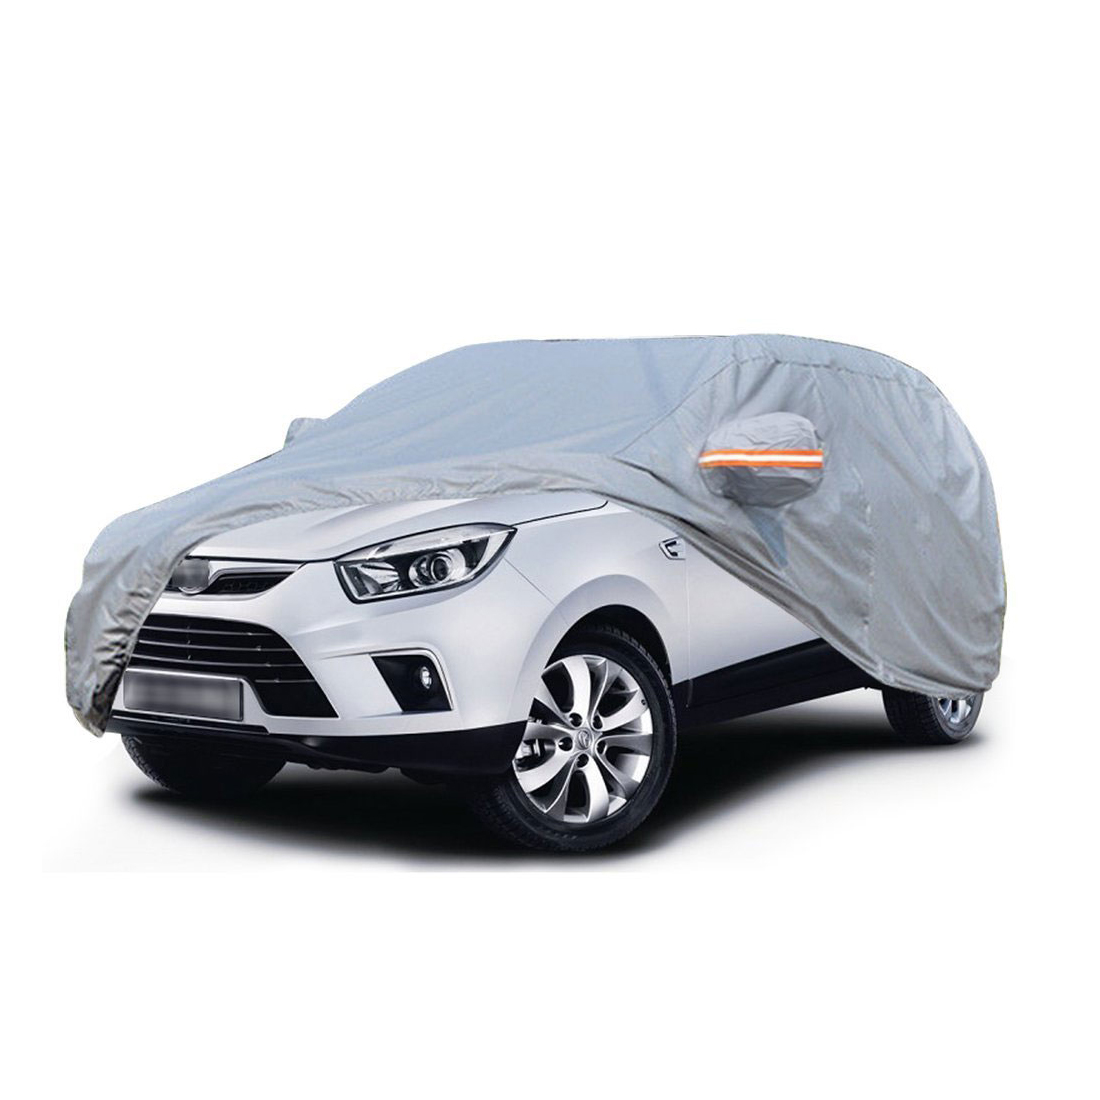 All Weather Car Cover Hot Welted Seamless Cotton Full Breathable Snow Resistant Waterproof Outdoor SUV Protector